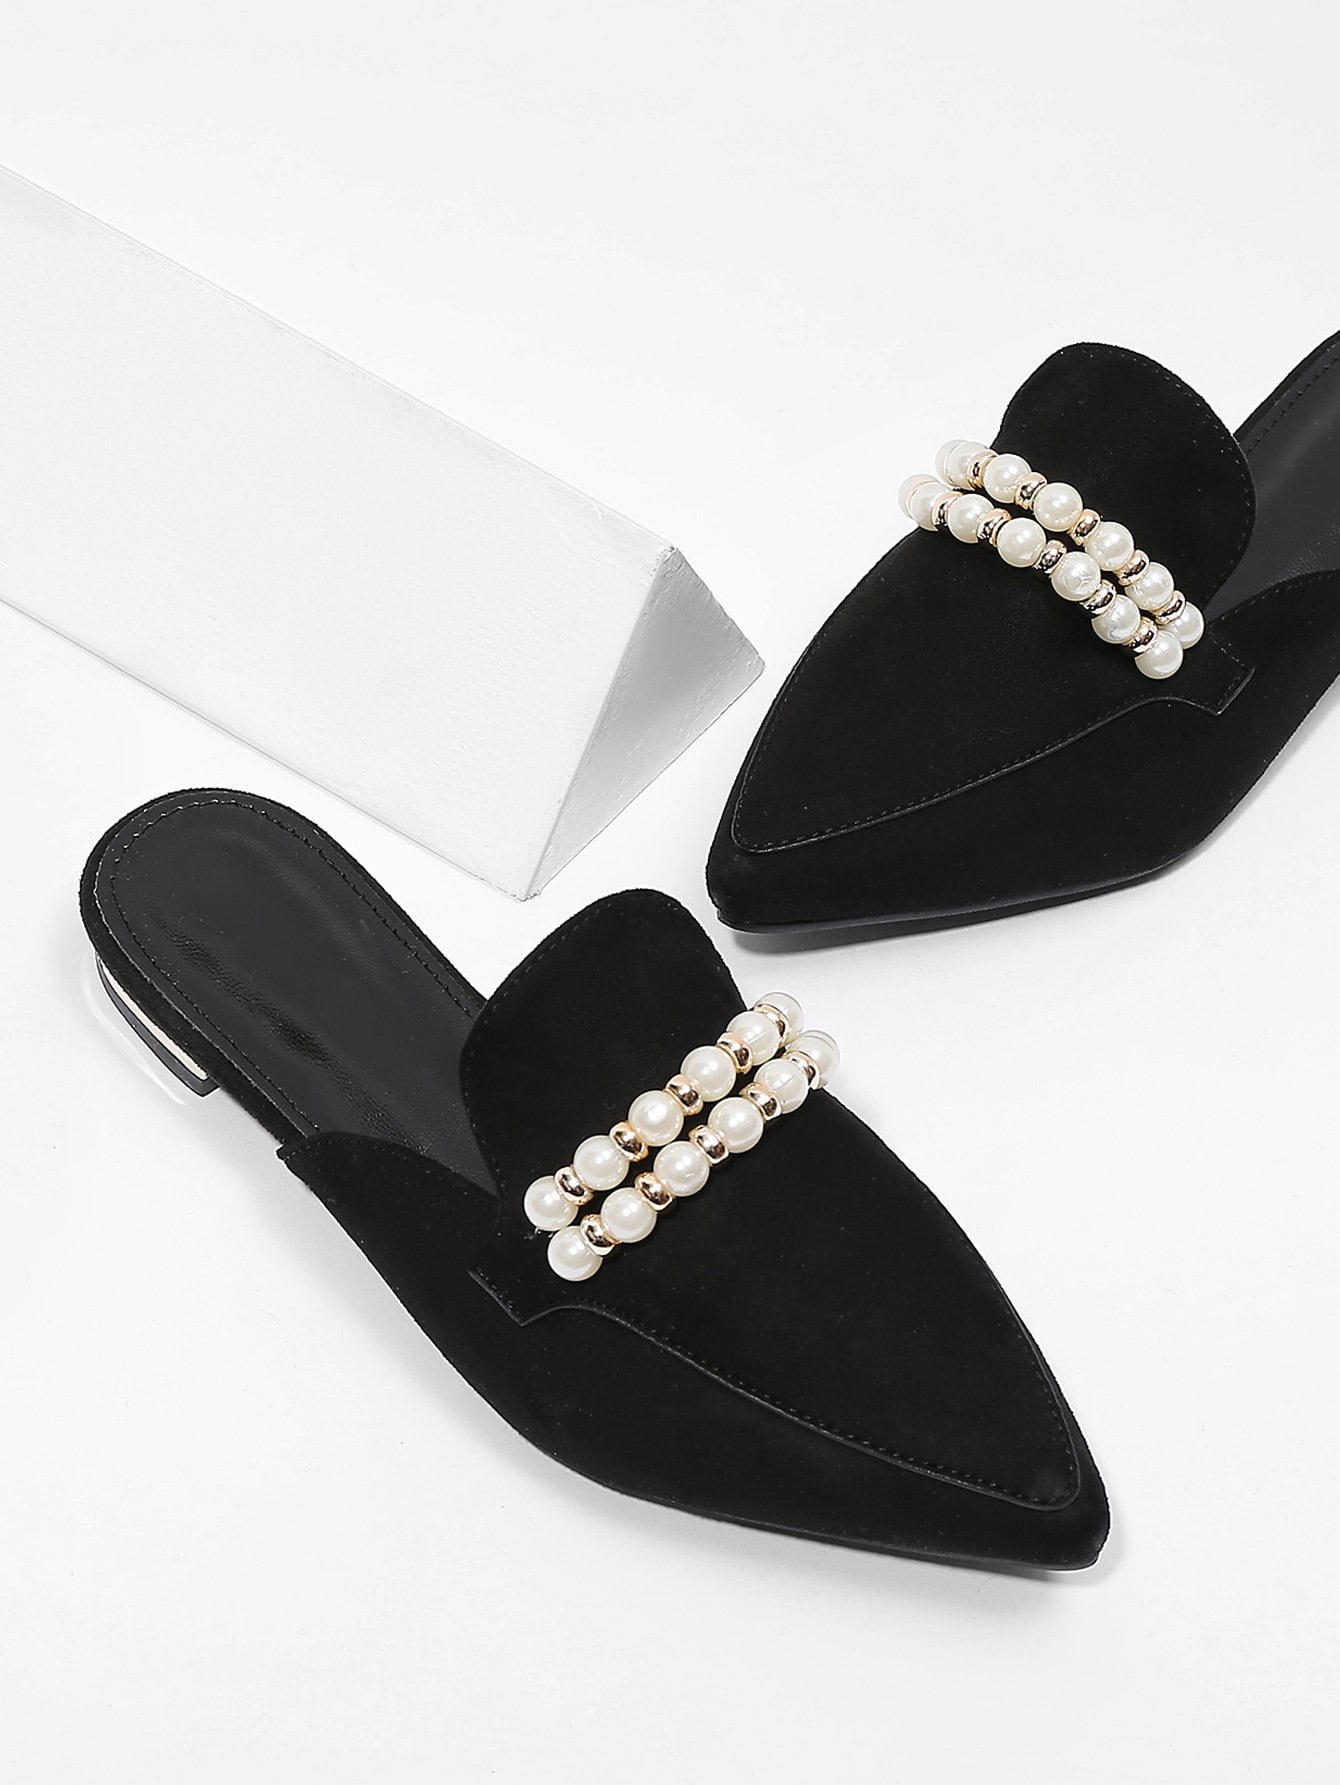 Faux Pearl Decorated Pointed Toe Flats pointed toe faux leather flats